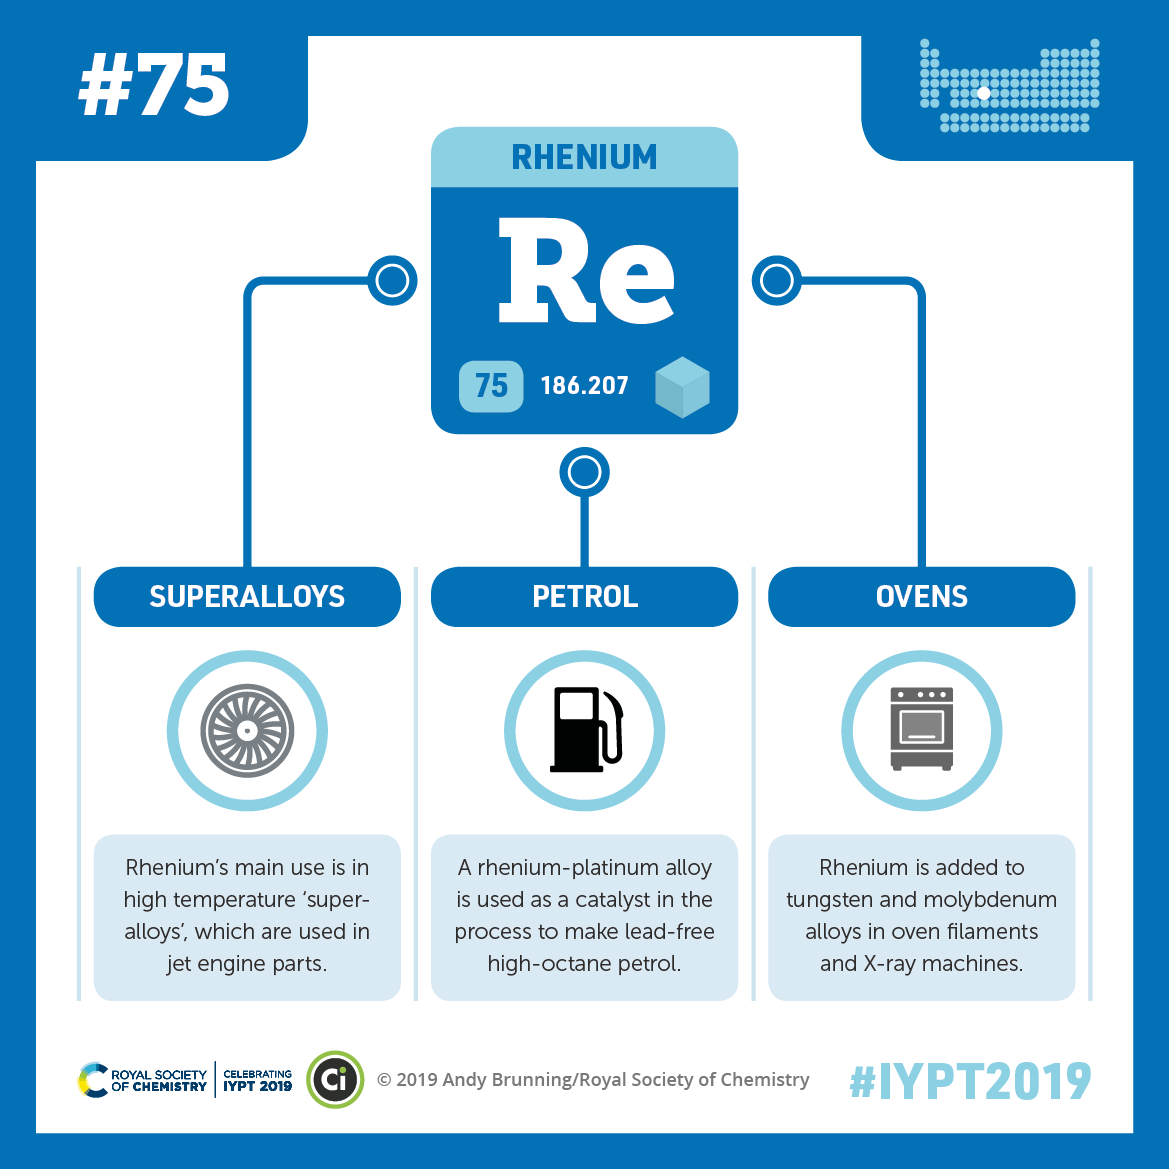 IYPT 2019 Elements 075: Rhenium: Superalloys and making lead-free petrol